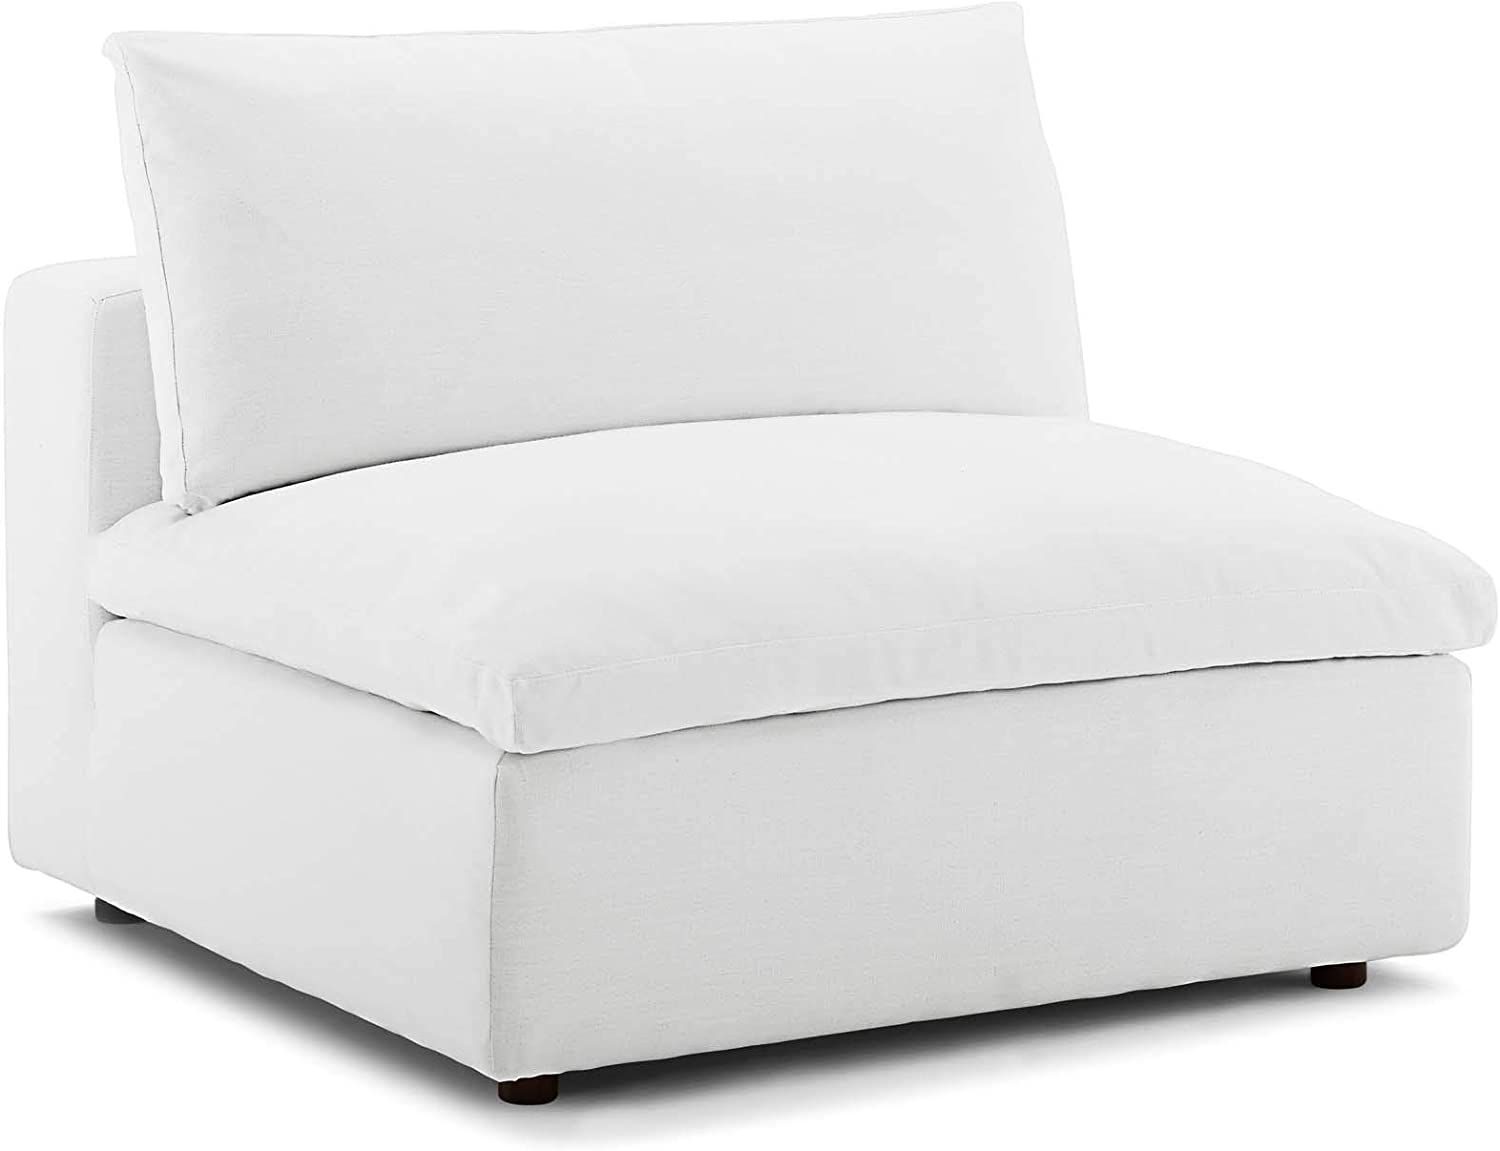 Modway Commix Down-Filled Overstuffed Upholstered Sectional Sofa Armless Chair in White